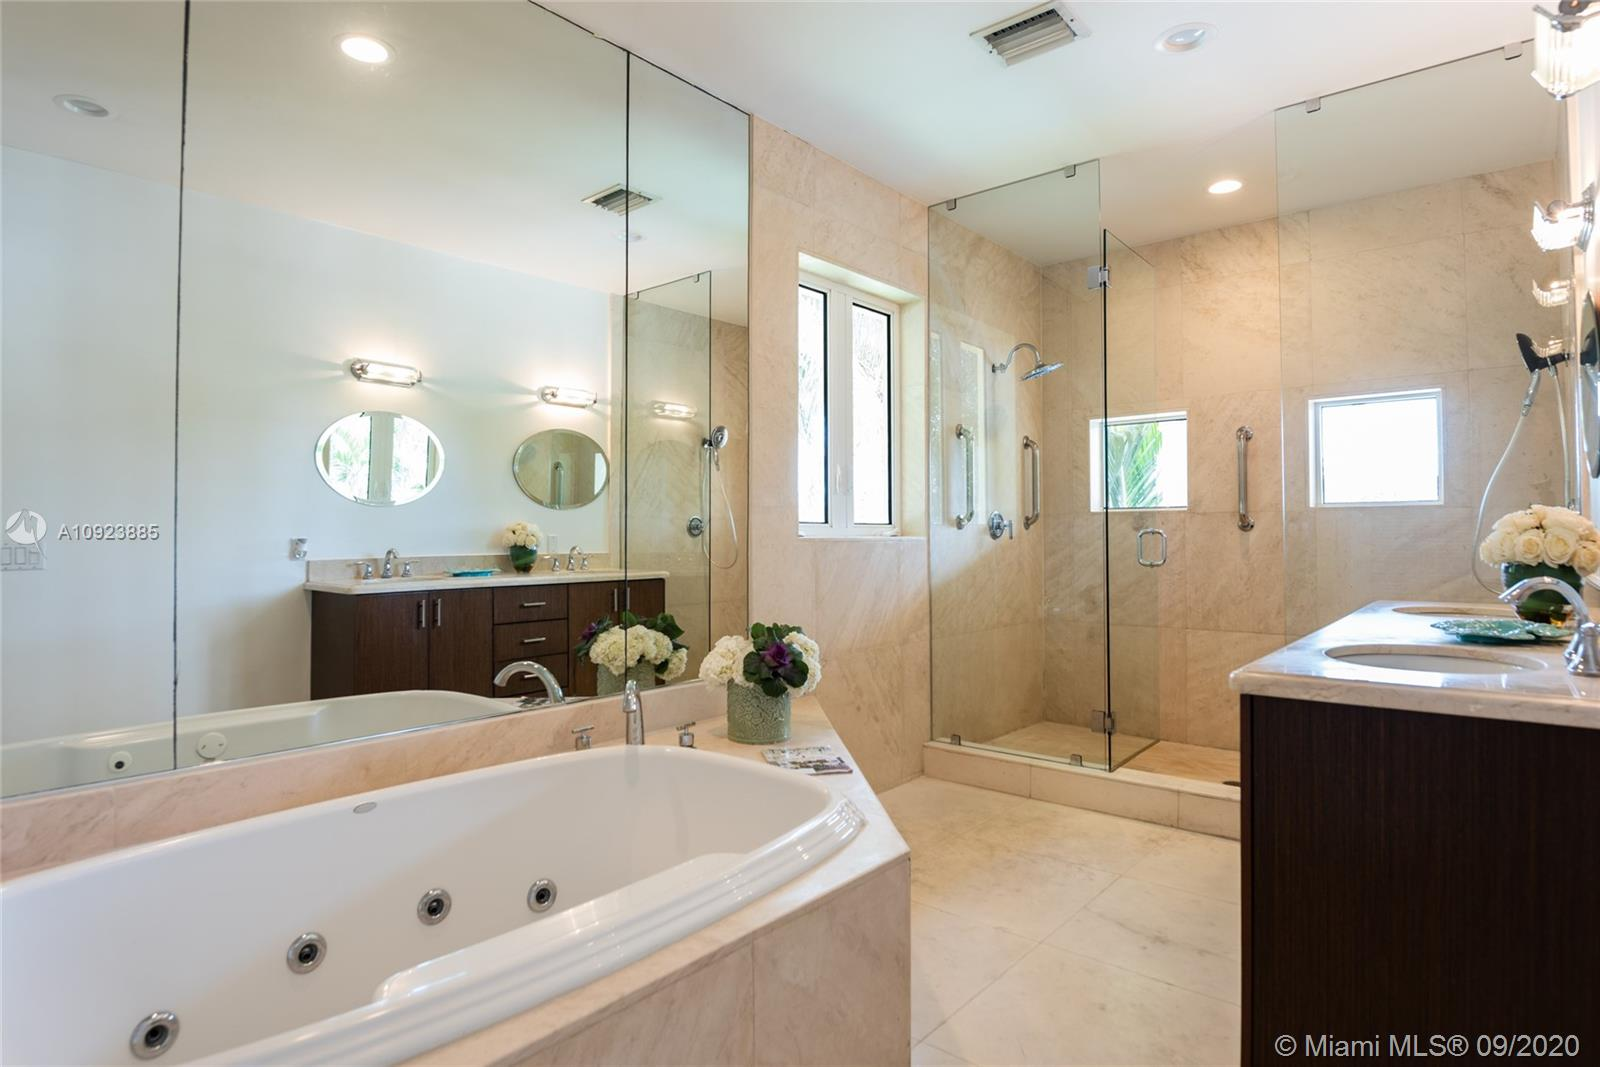 Large primary bathroom with spa tub and dual sinks